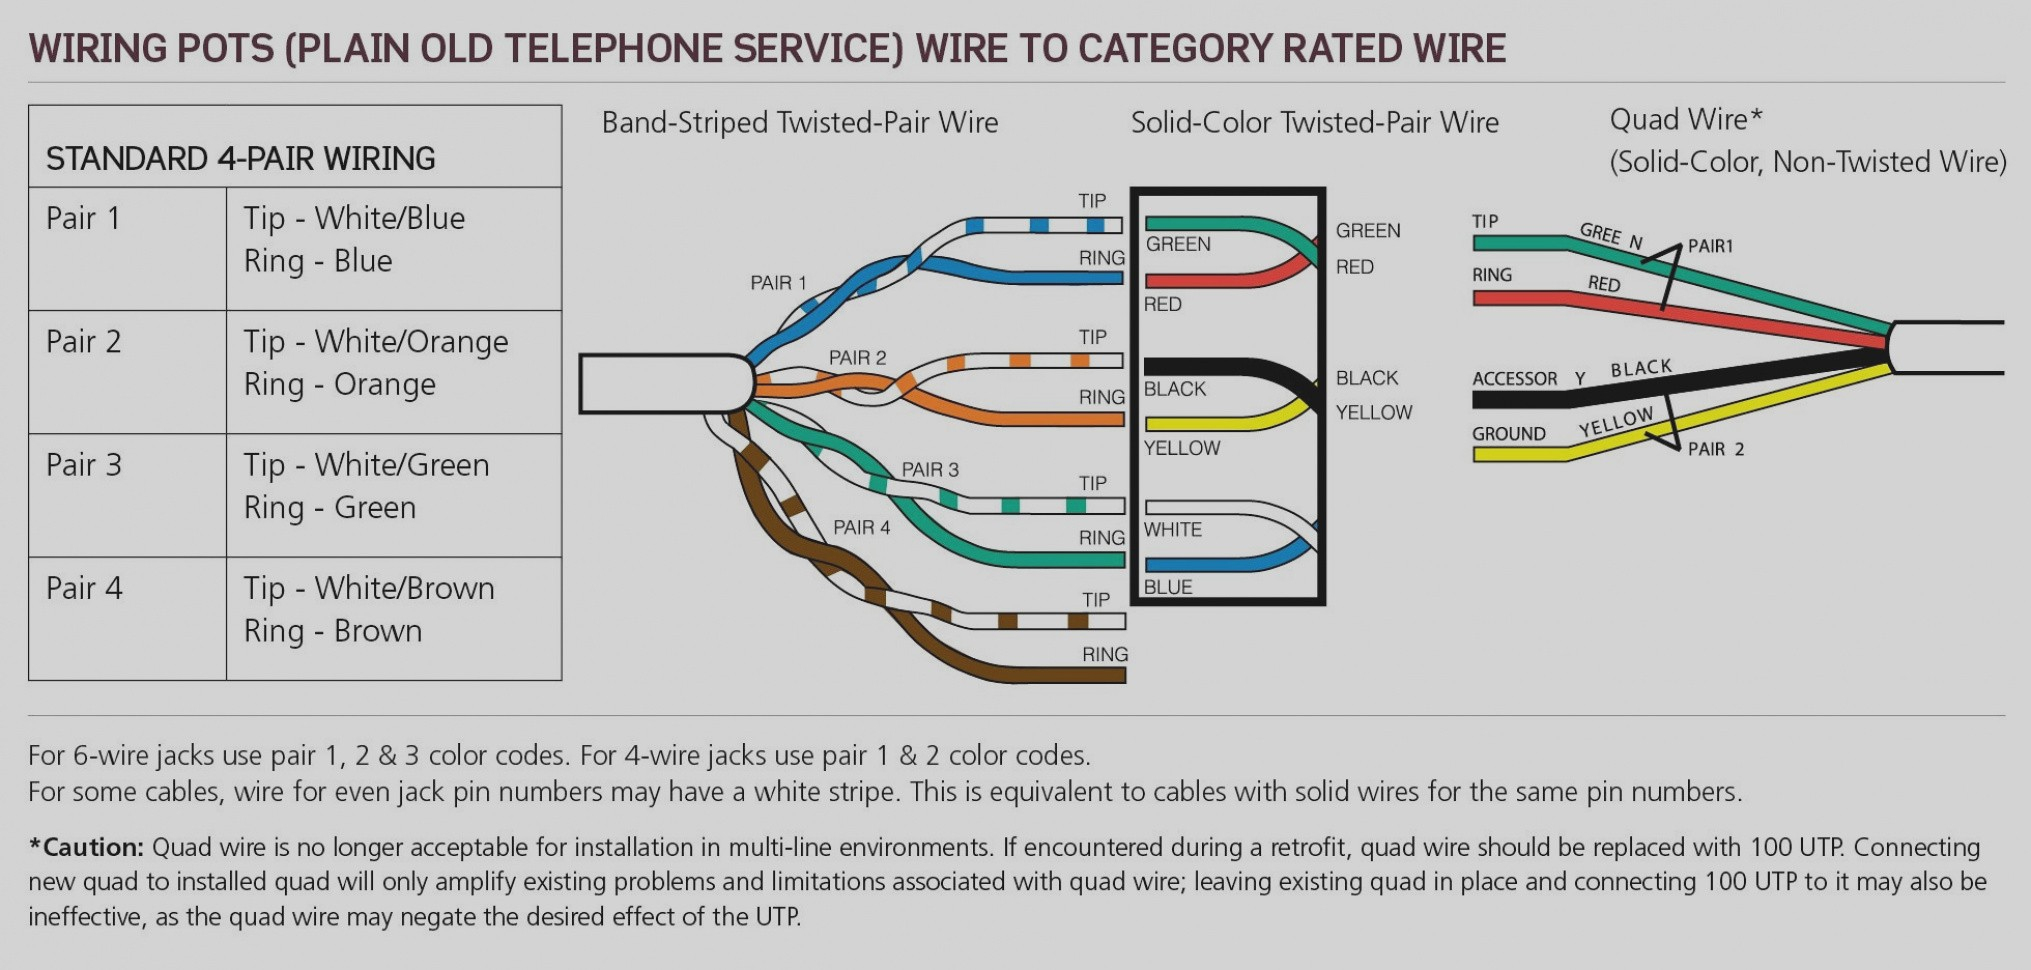 Home Phone Wiring Color Code - Wiring Diagram Detailed - Phone Jack Wiring Diagram